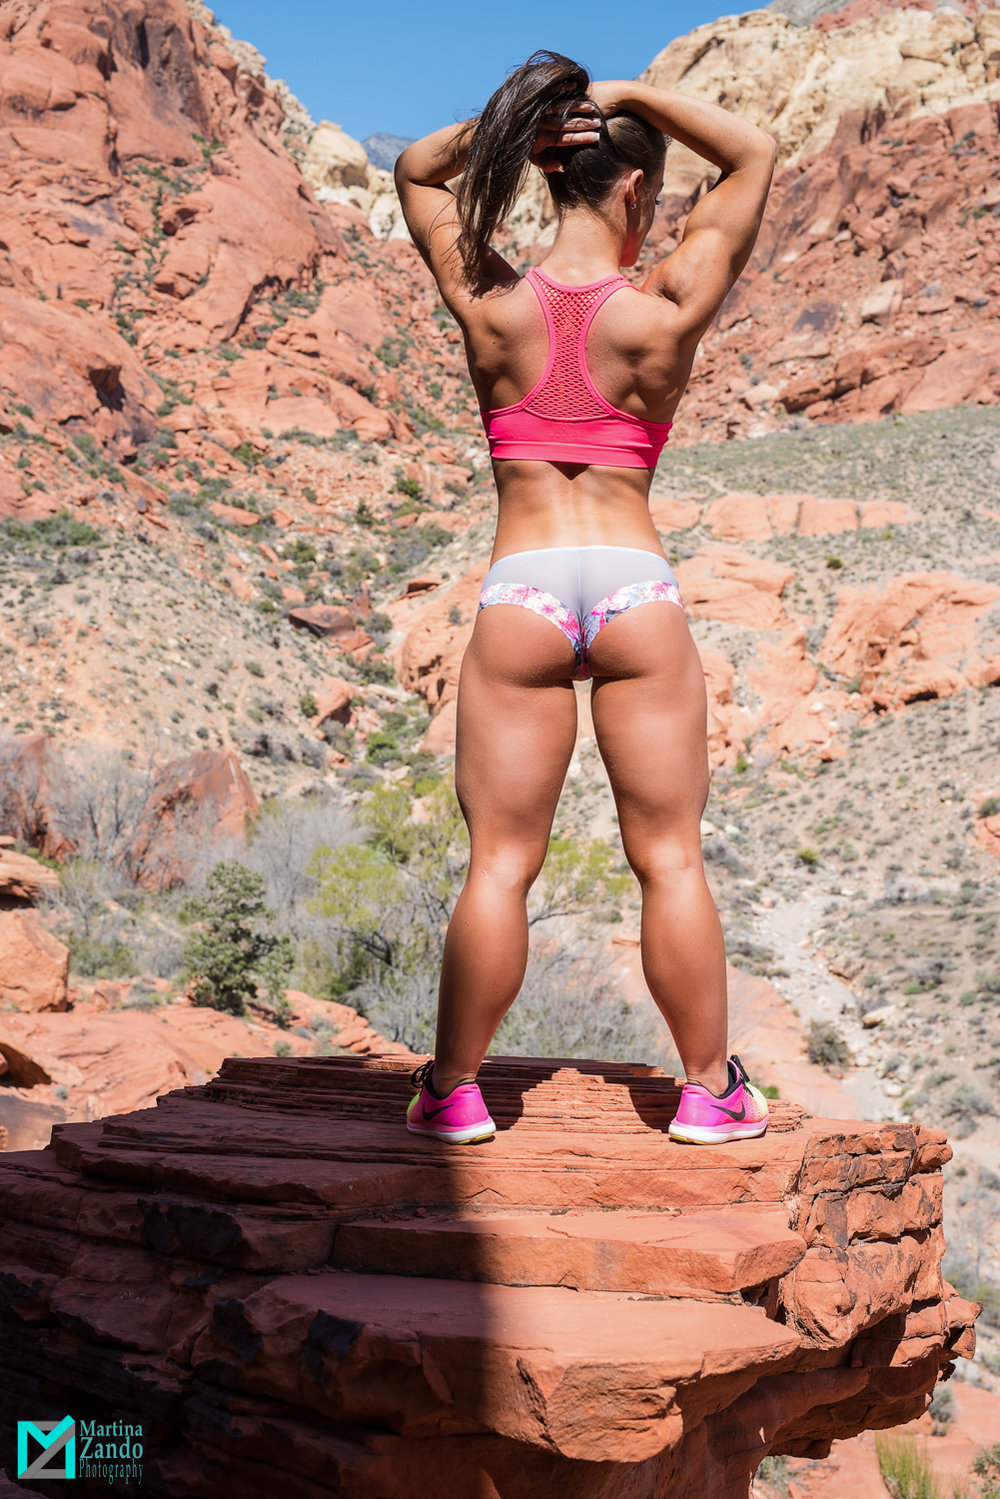 Martina_Zando_Photography__Las_Vegas_Fitness-3.jpg